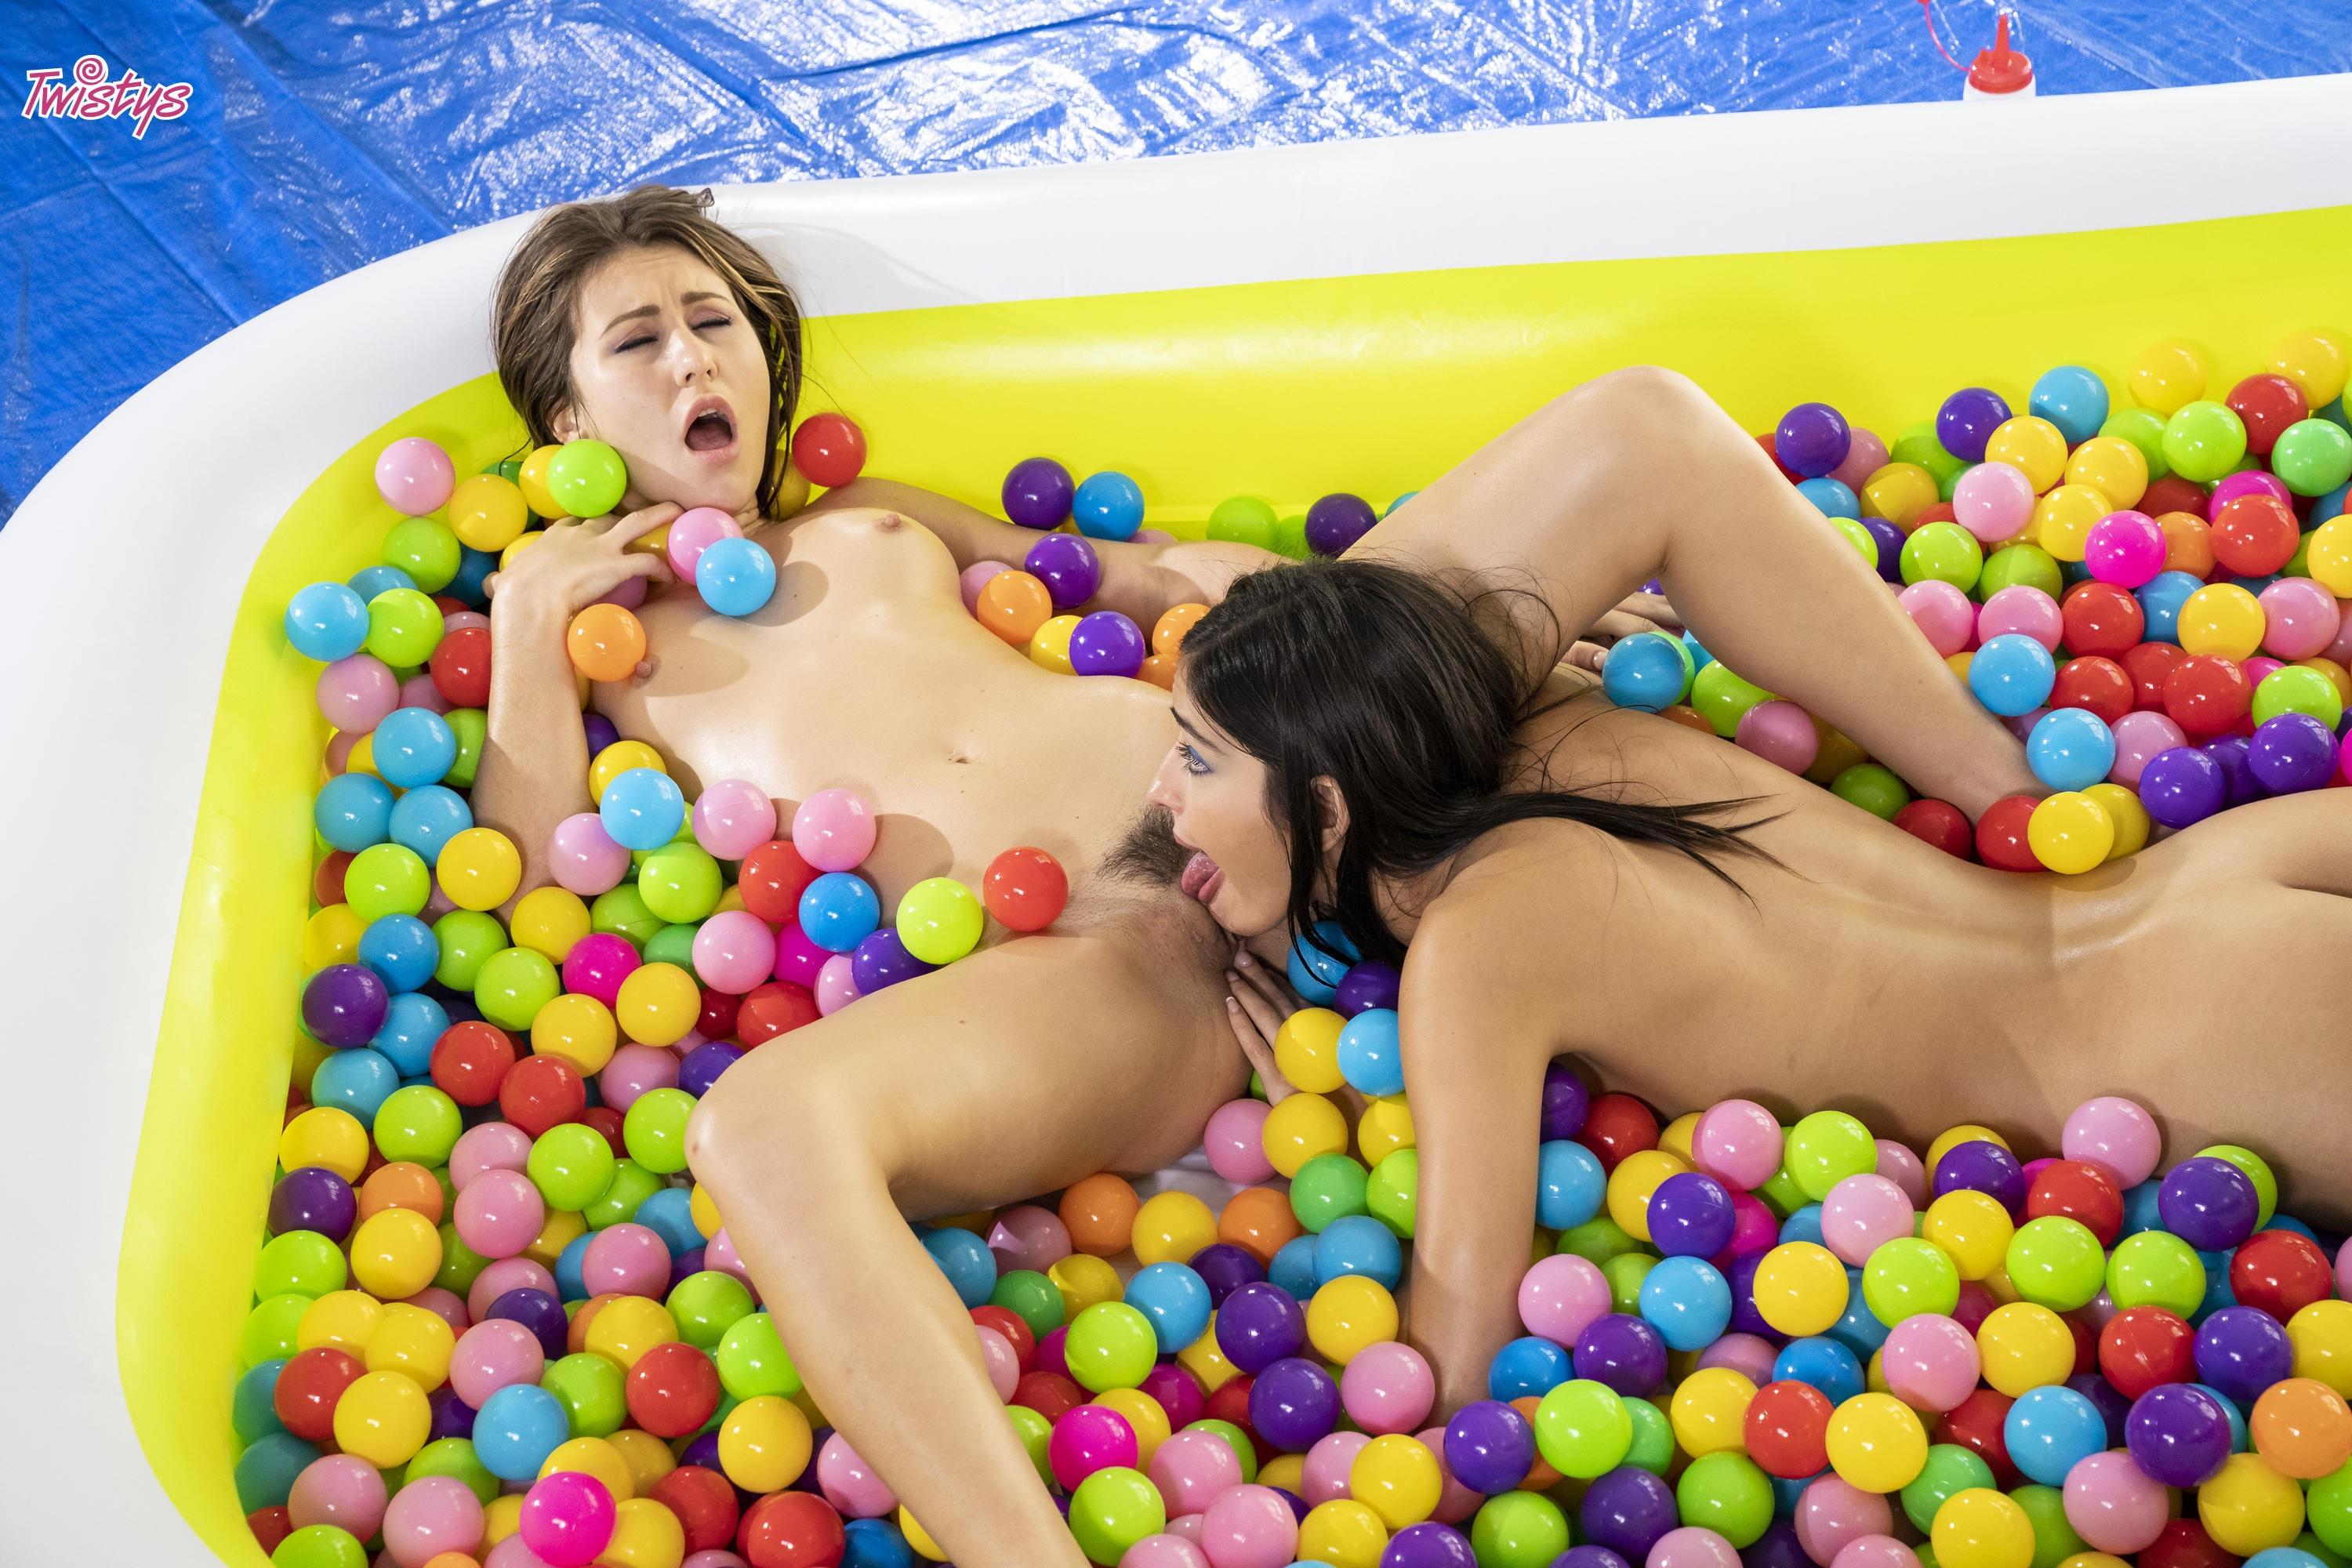 Twistys 'Ballin' Booties' starring Emily Willis (Photo 66)